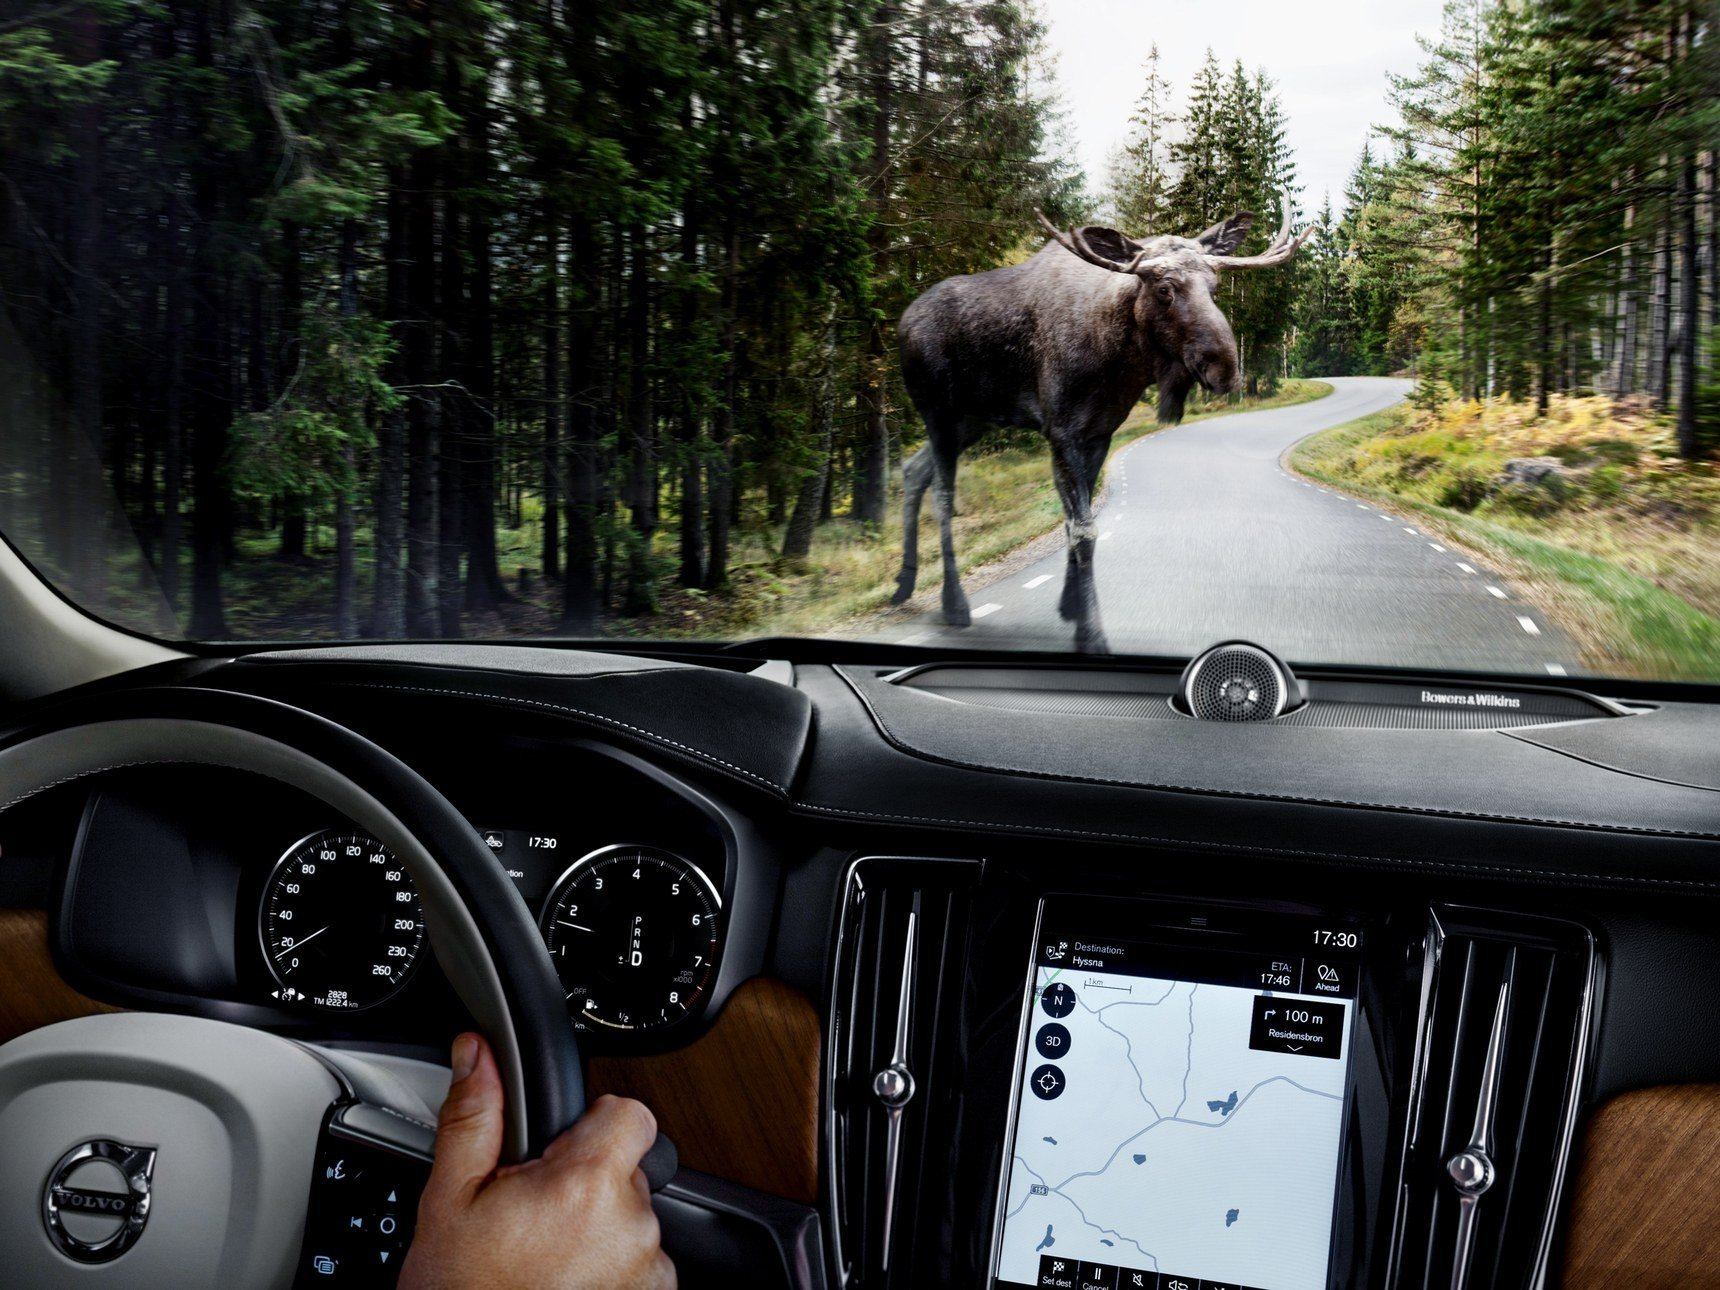 New Volvo S Large Animal Detection System Spots Moose Deer On This Month